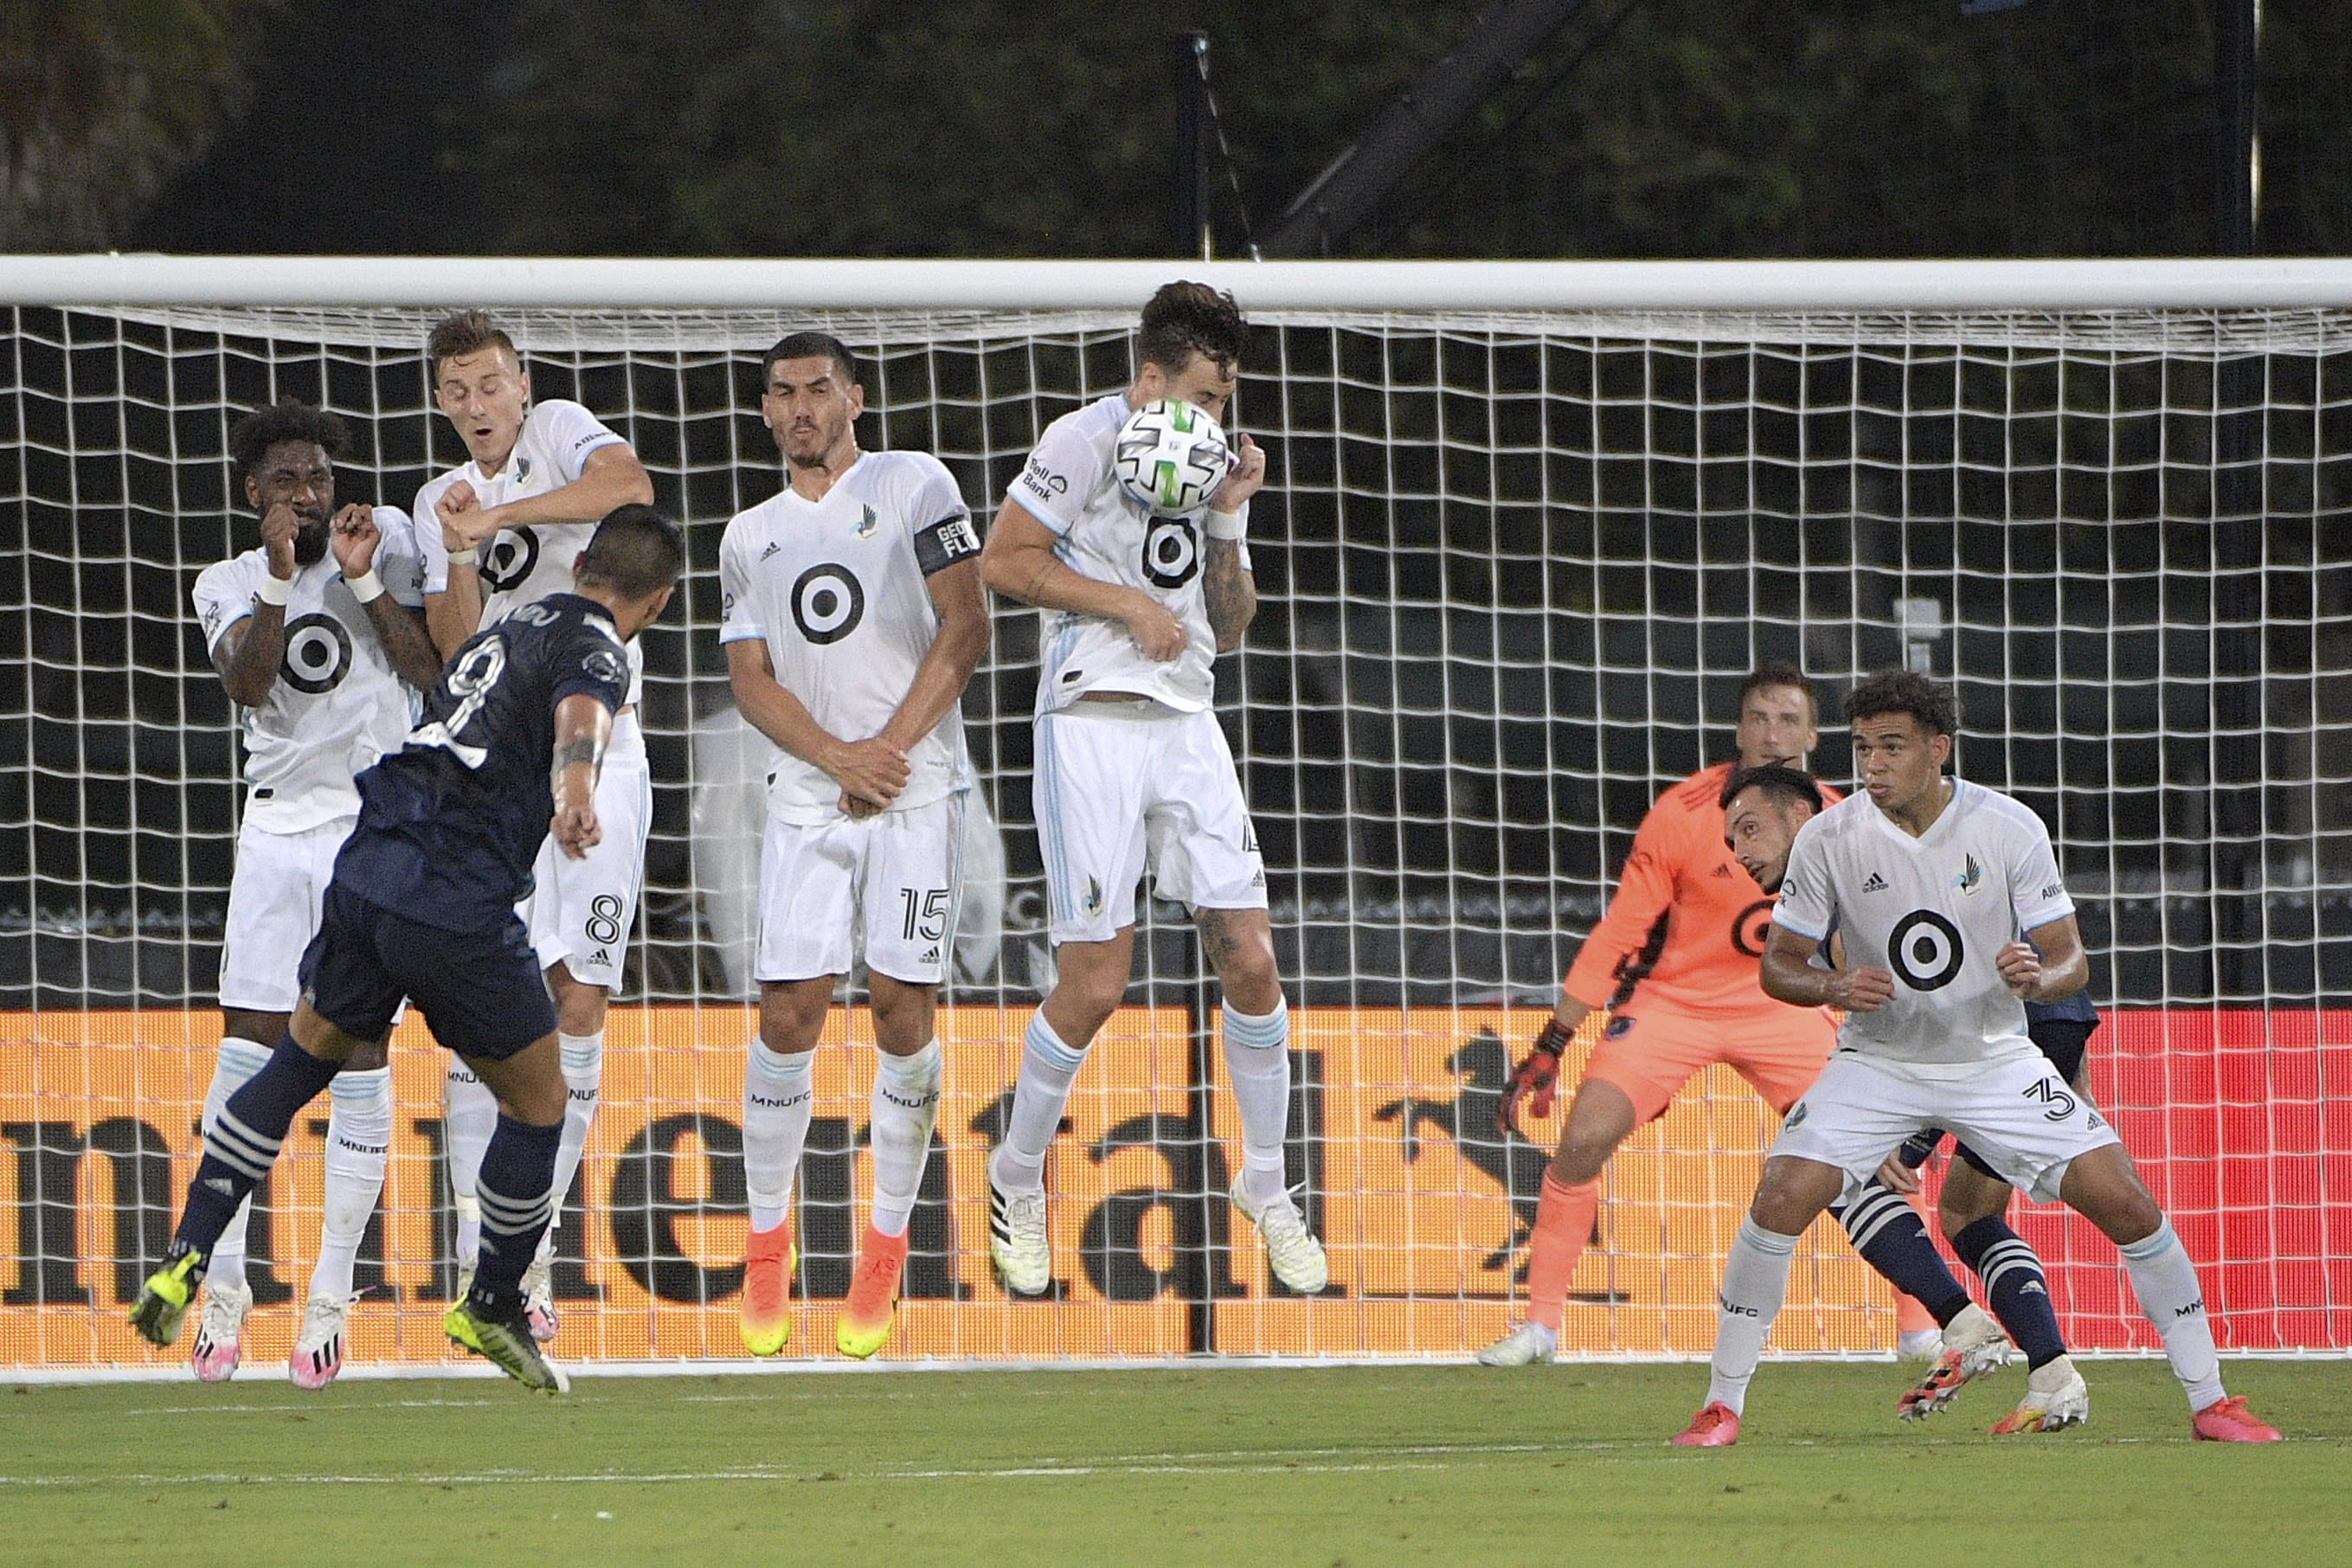 Minnesota United defender Jose Aja, center, gets hit in the face by the ball on a penalty kick by Sporting KC forward Alan Pulido (9) during the first half of an MLS soccer match, Sunday, July 12, 2020, in Kissimmee, Fla. (AP Photo/Phelan M. Ebenhack)